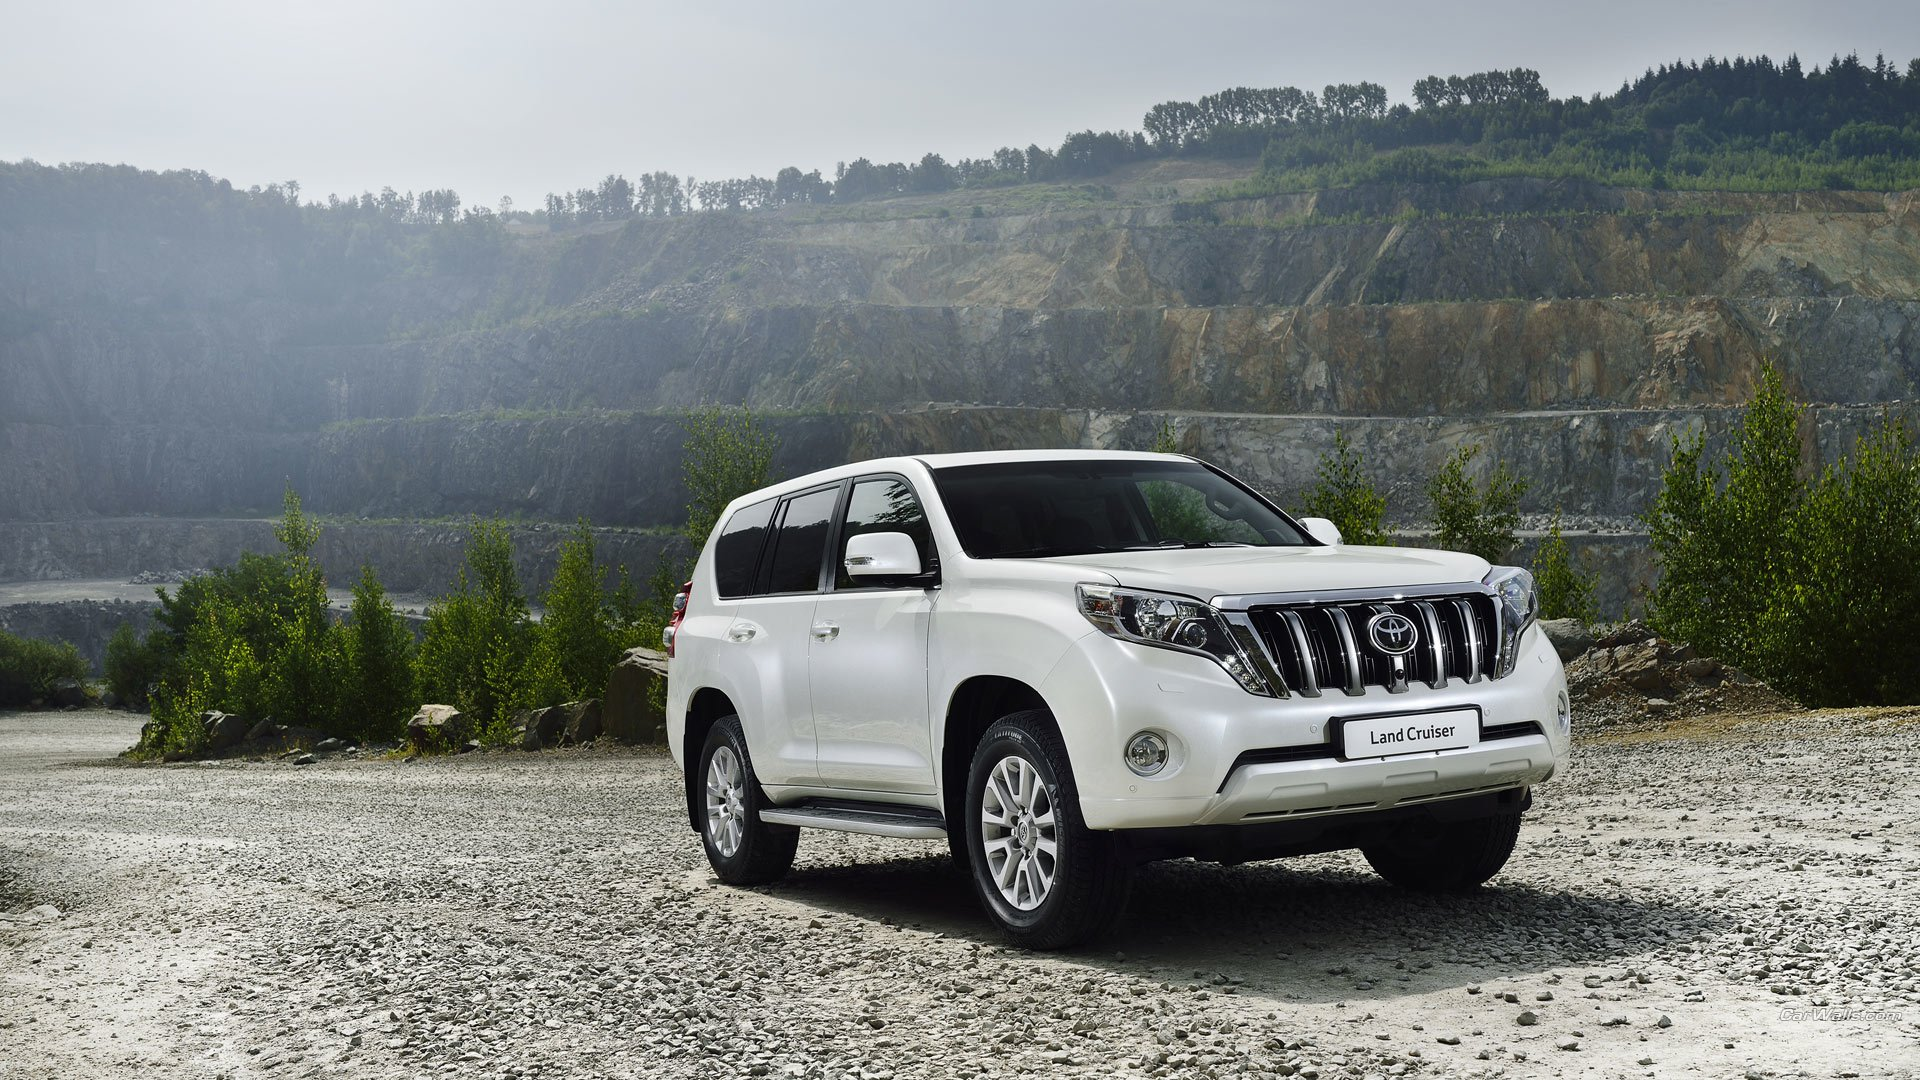 Vehicles 2014 toyota land cruiser toyota prado jeep wallpaper